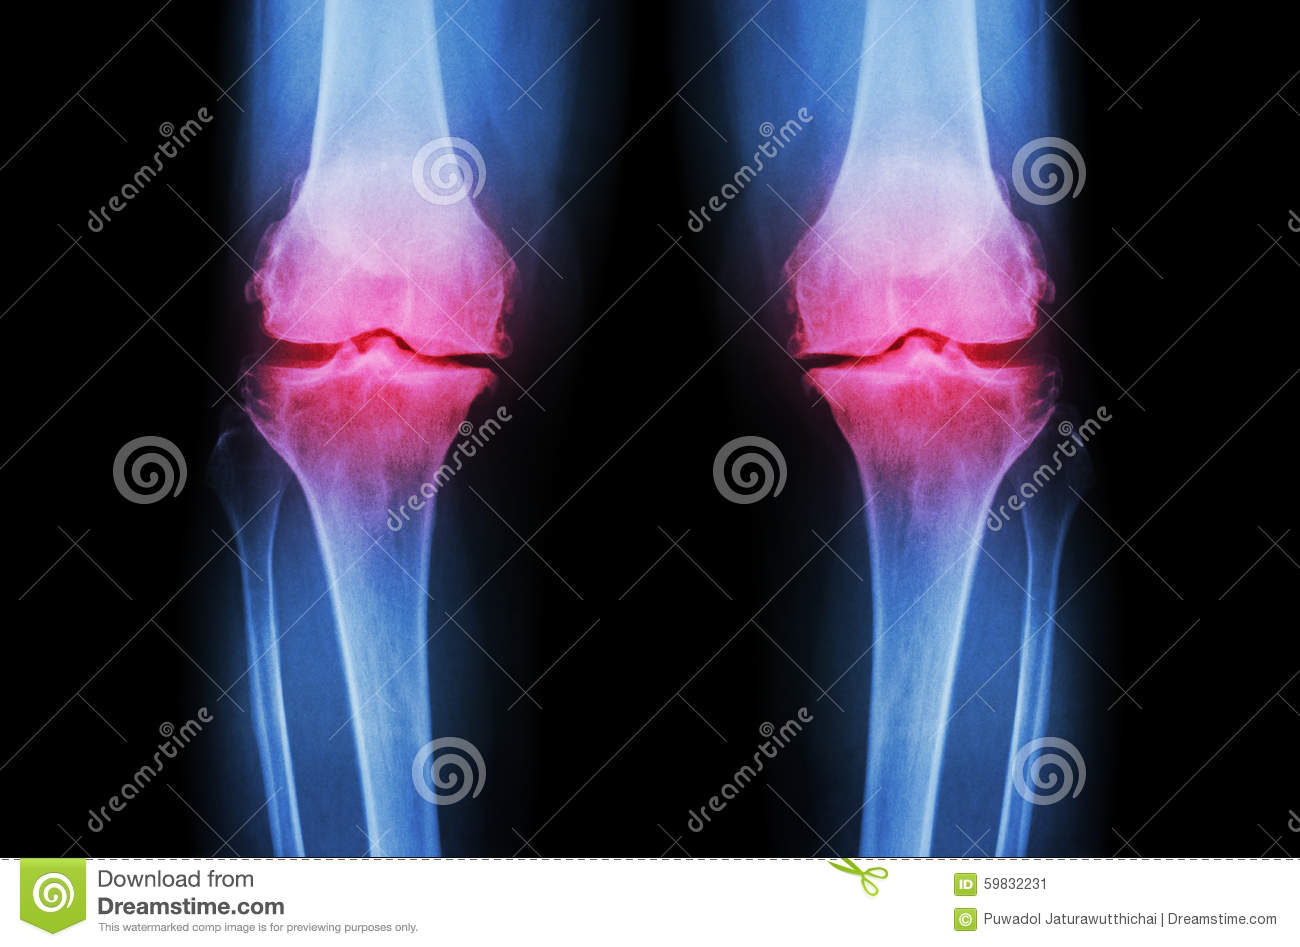 Osteoarthritis Knee ( OA Knee ). Film x-ray both knee ( front view ) show narrow joint space ( joint cartilage loss ) , osteophyte